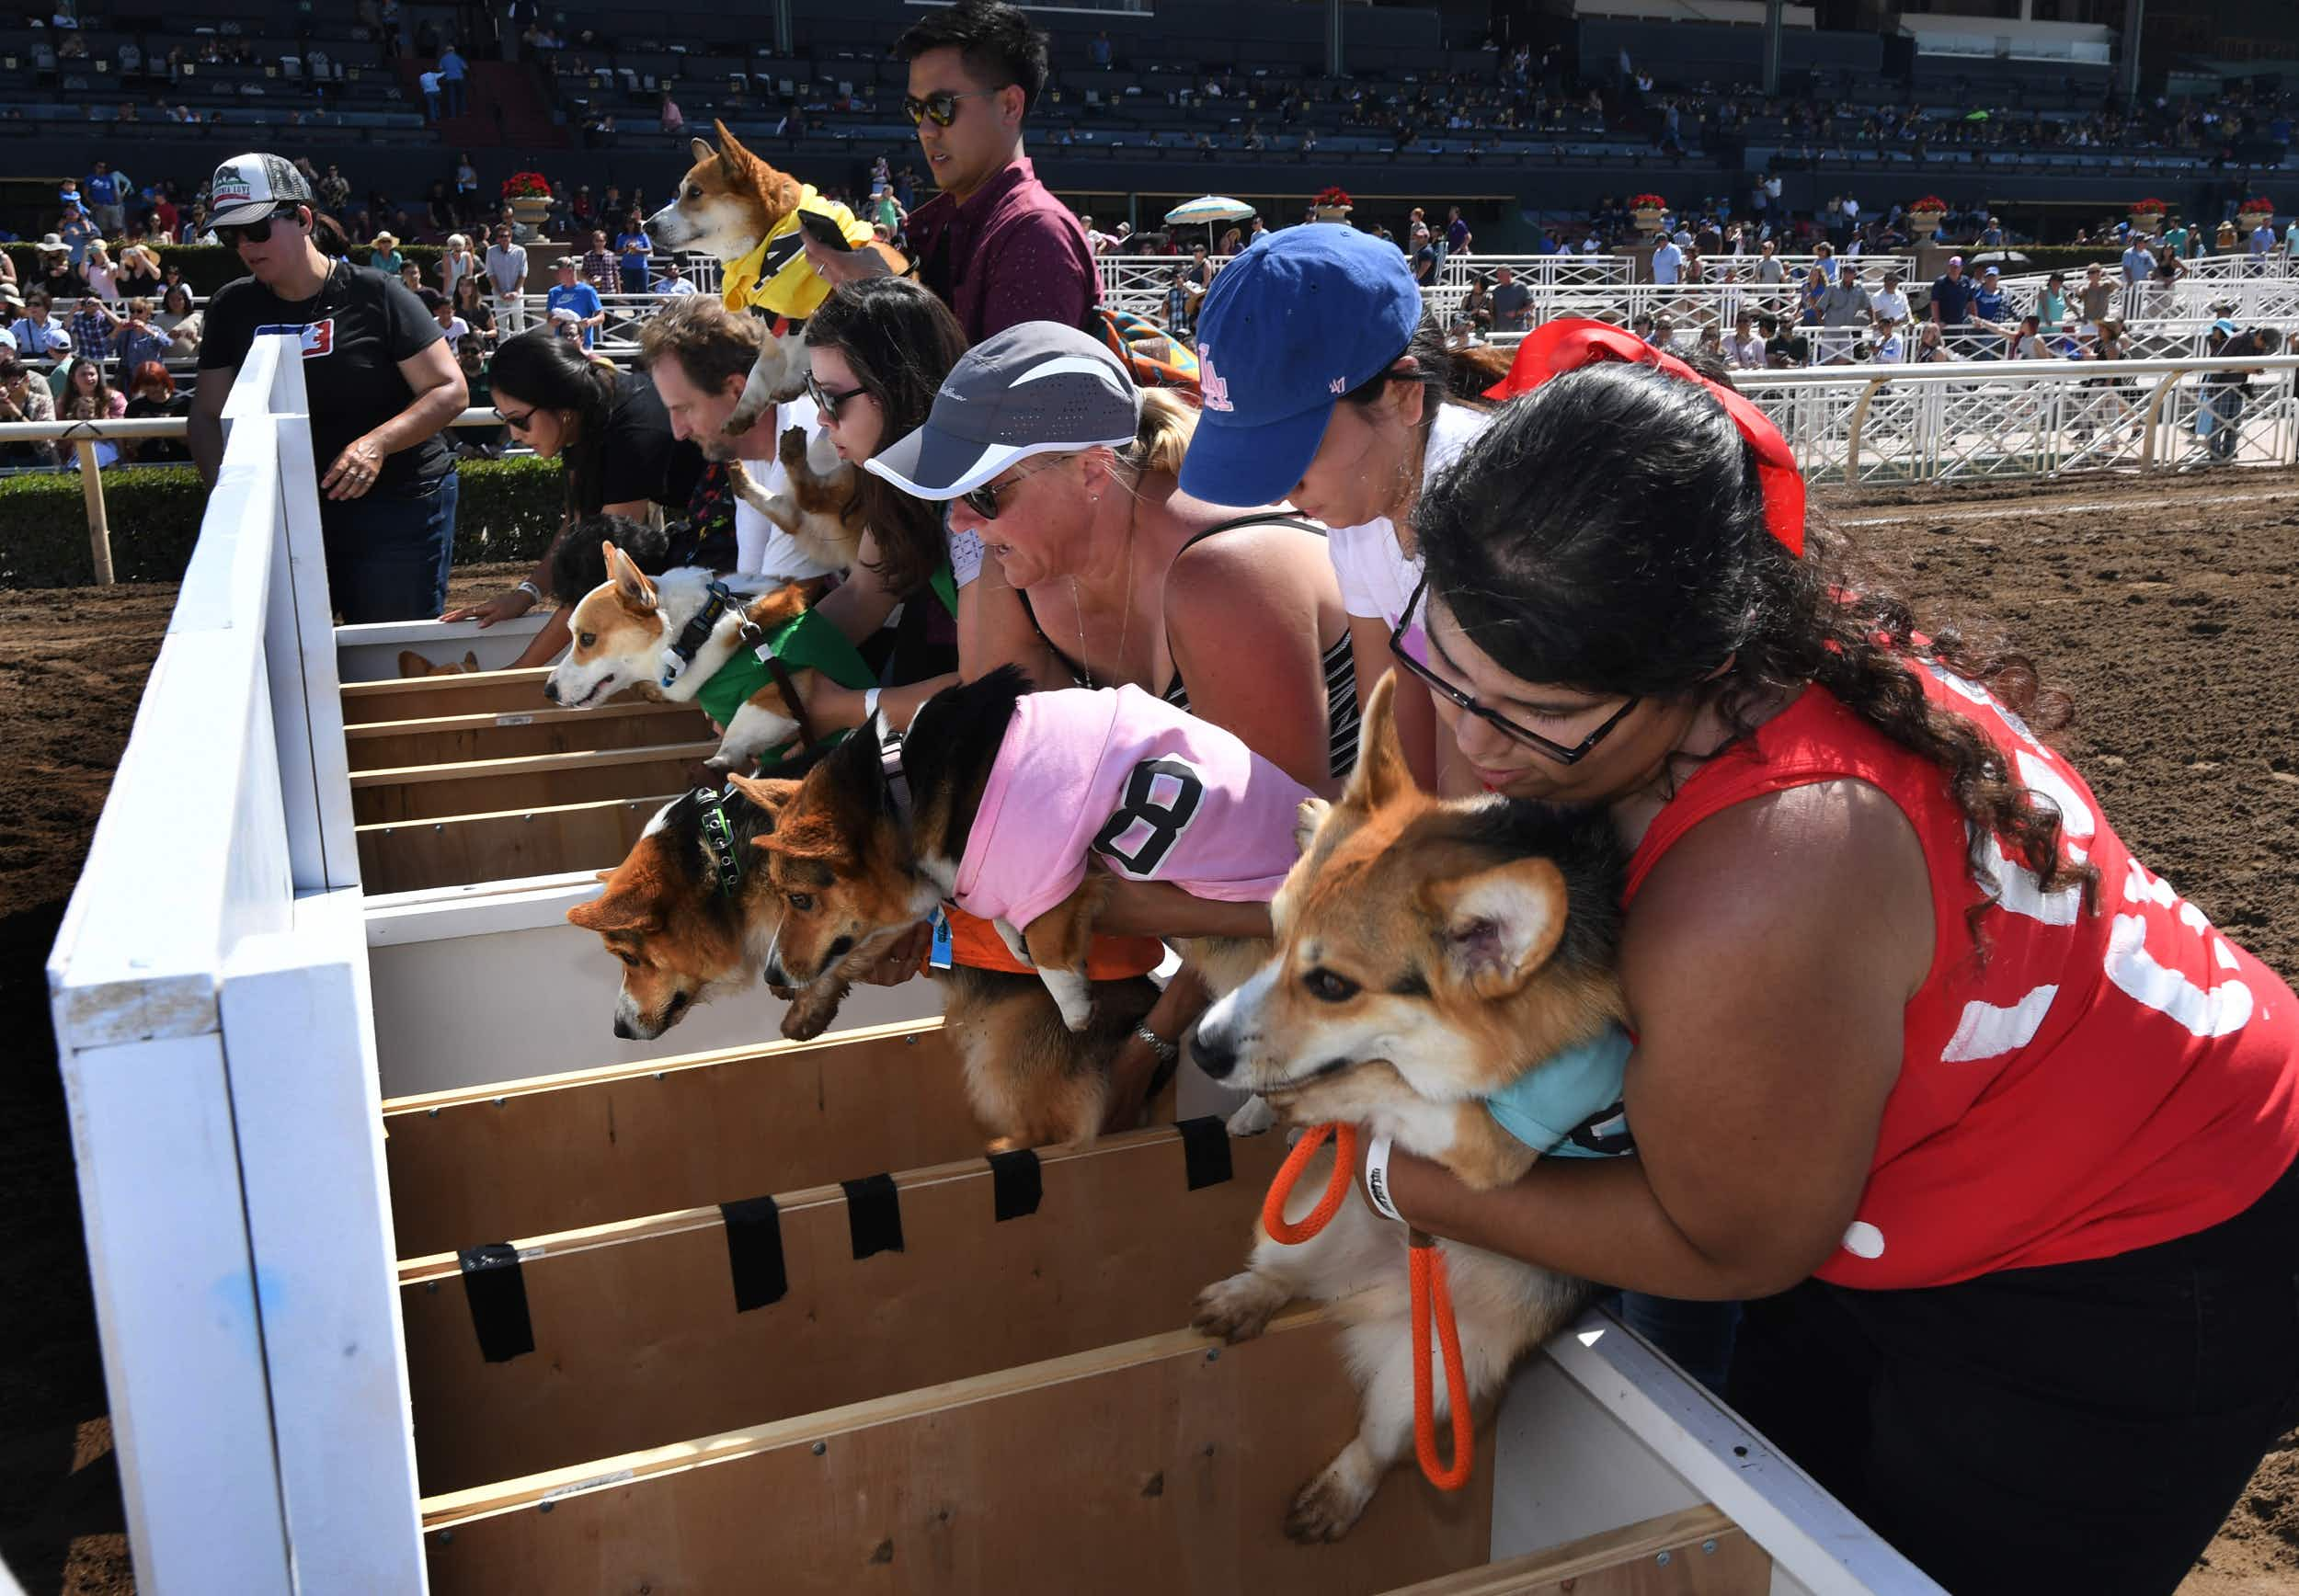 Hundreds of corgis compete for glory in Southern California